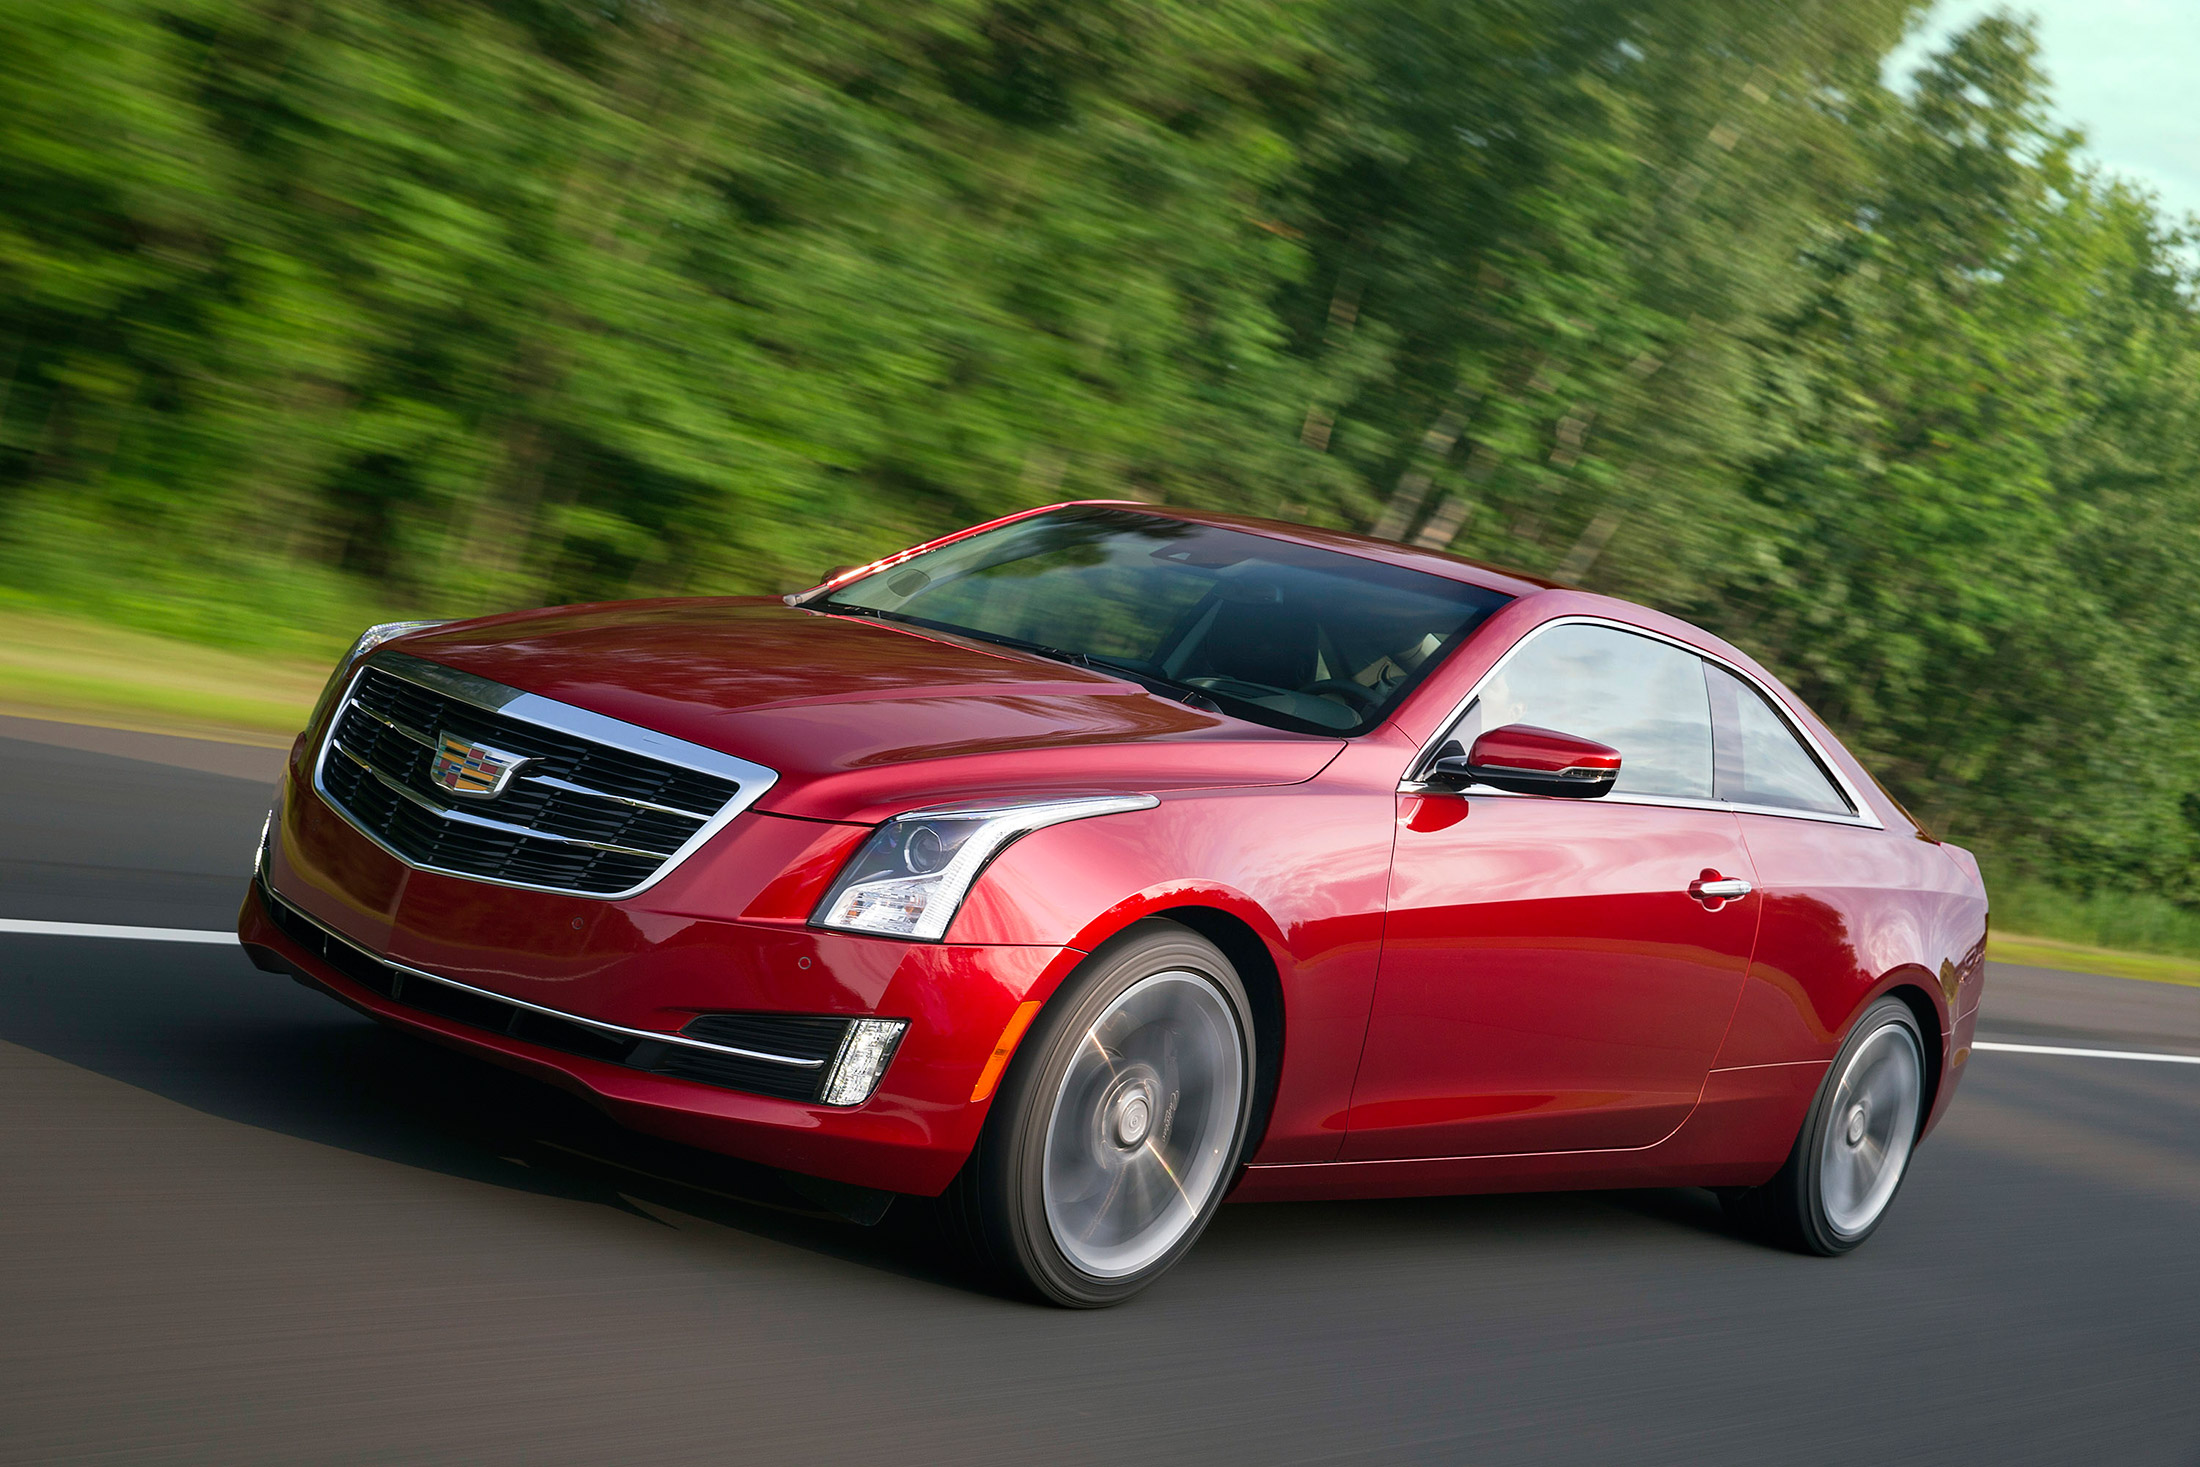 2016 Cadillac Ats Coupe Review Annoying Forgettable And A Big 3 1 L Engine Diagram Improvement Bloomberg